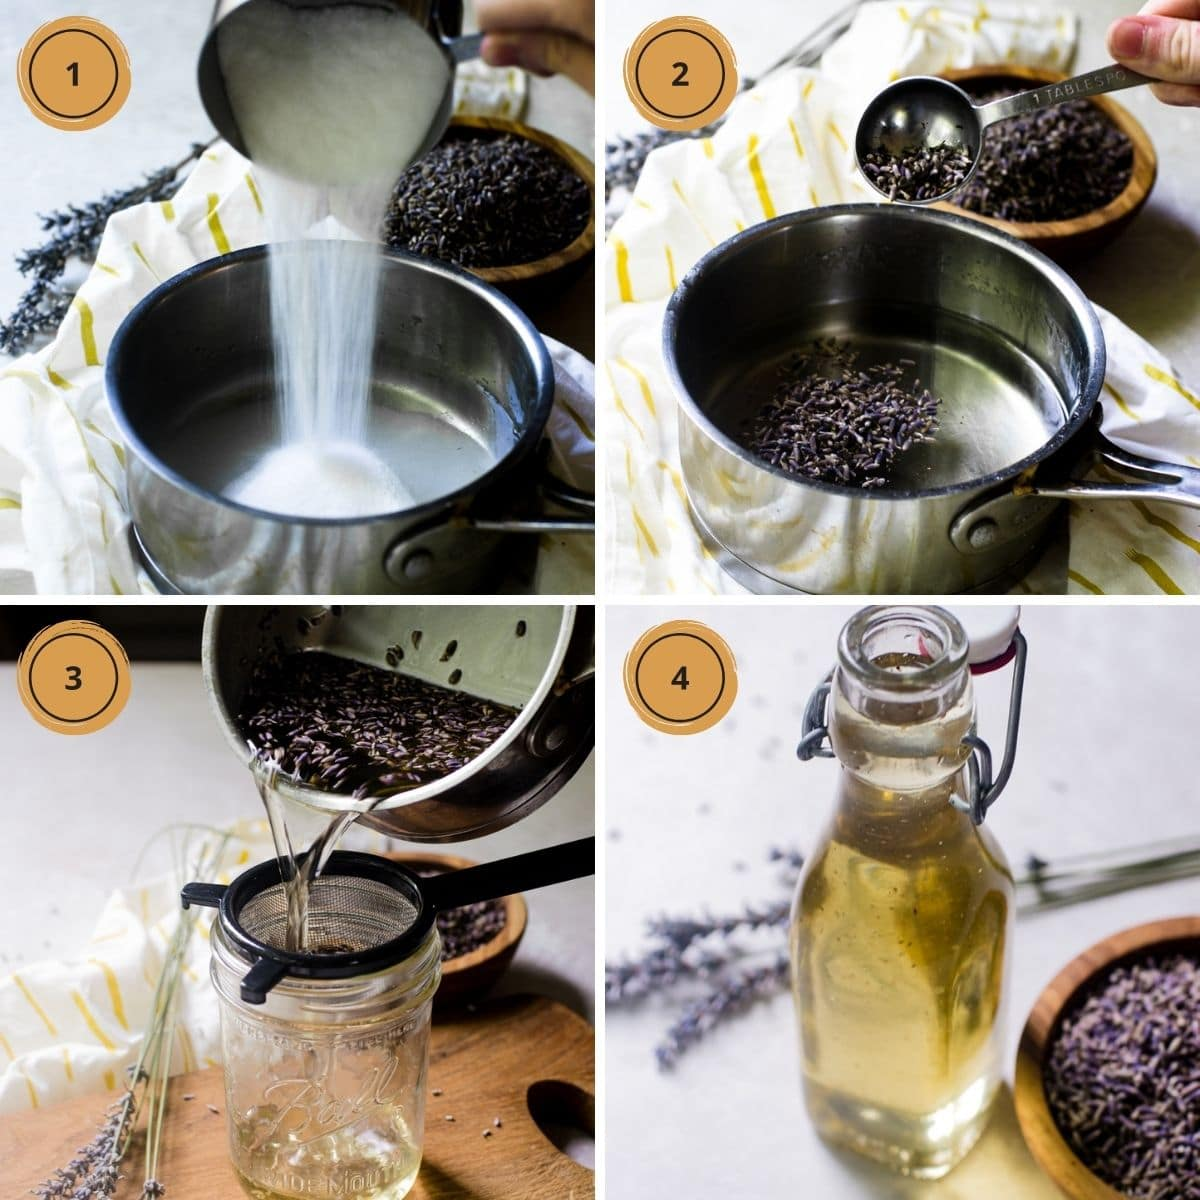 Four pictures showing the steps for making lavender simple syrup.